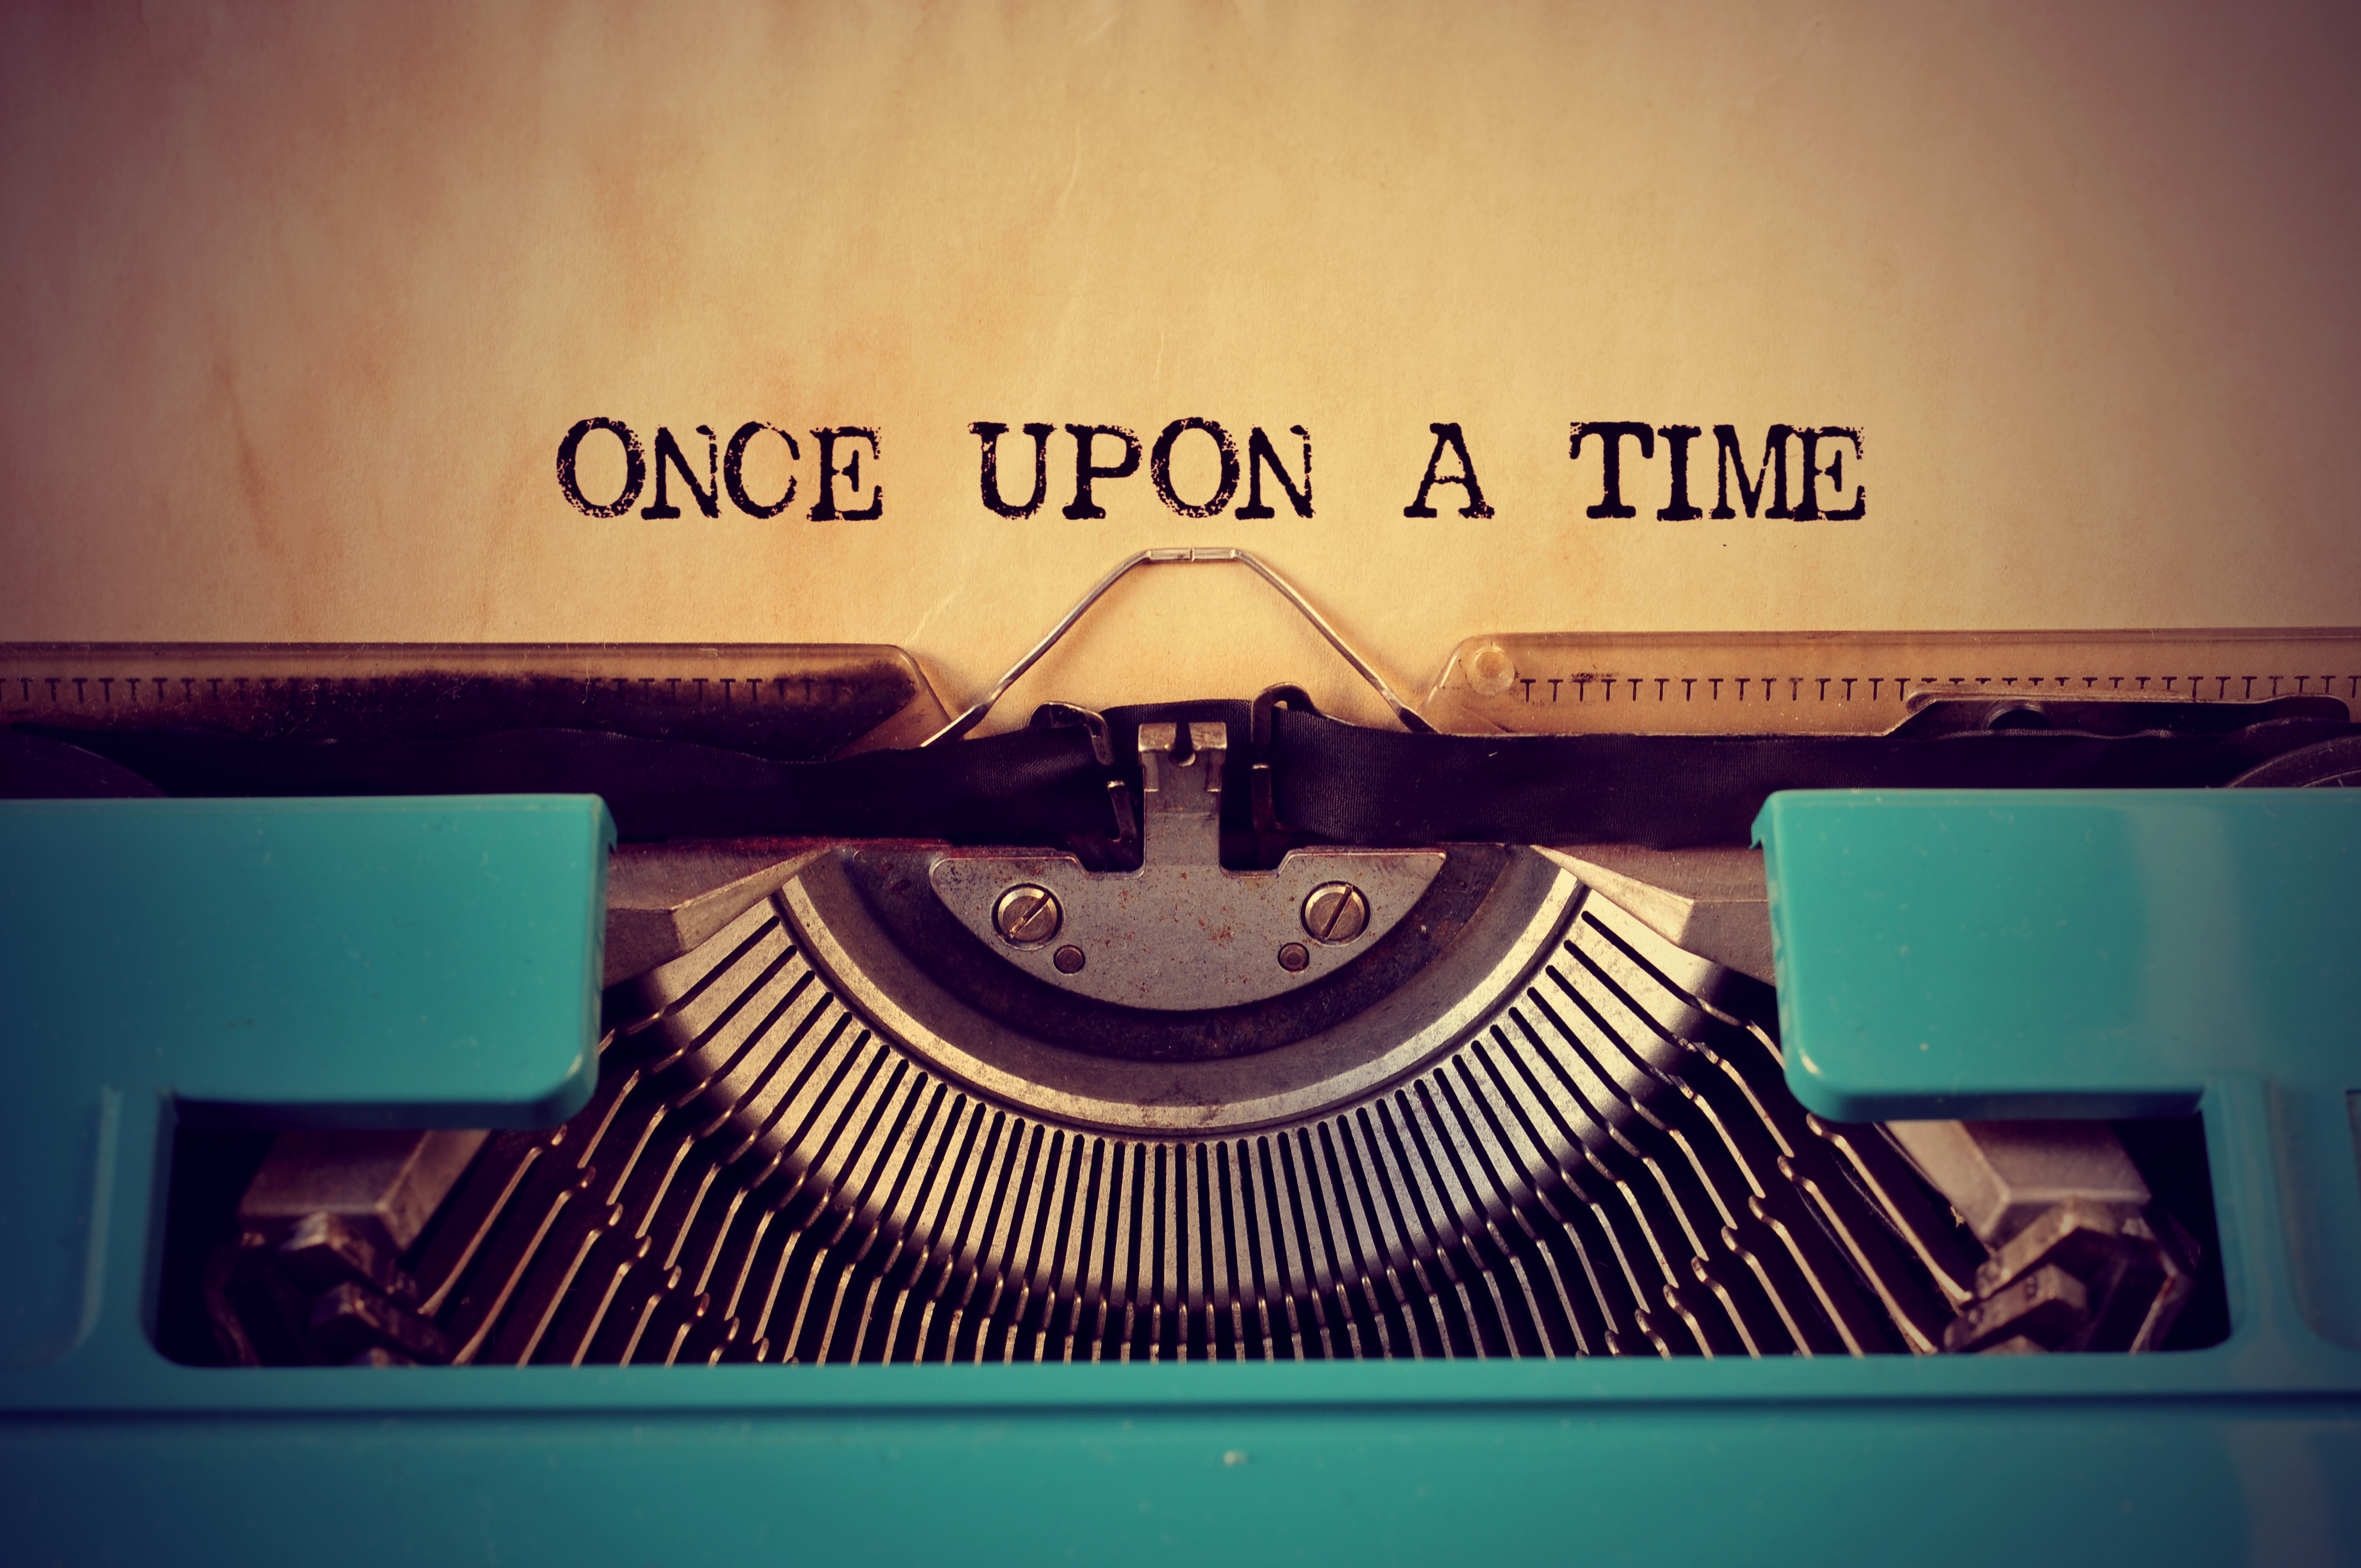 Once Upon a Time in GVEC Internet on typewriter